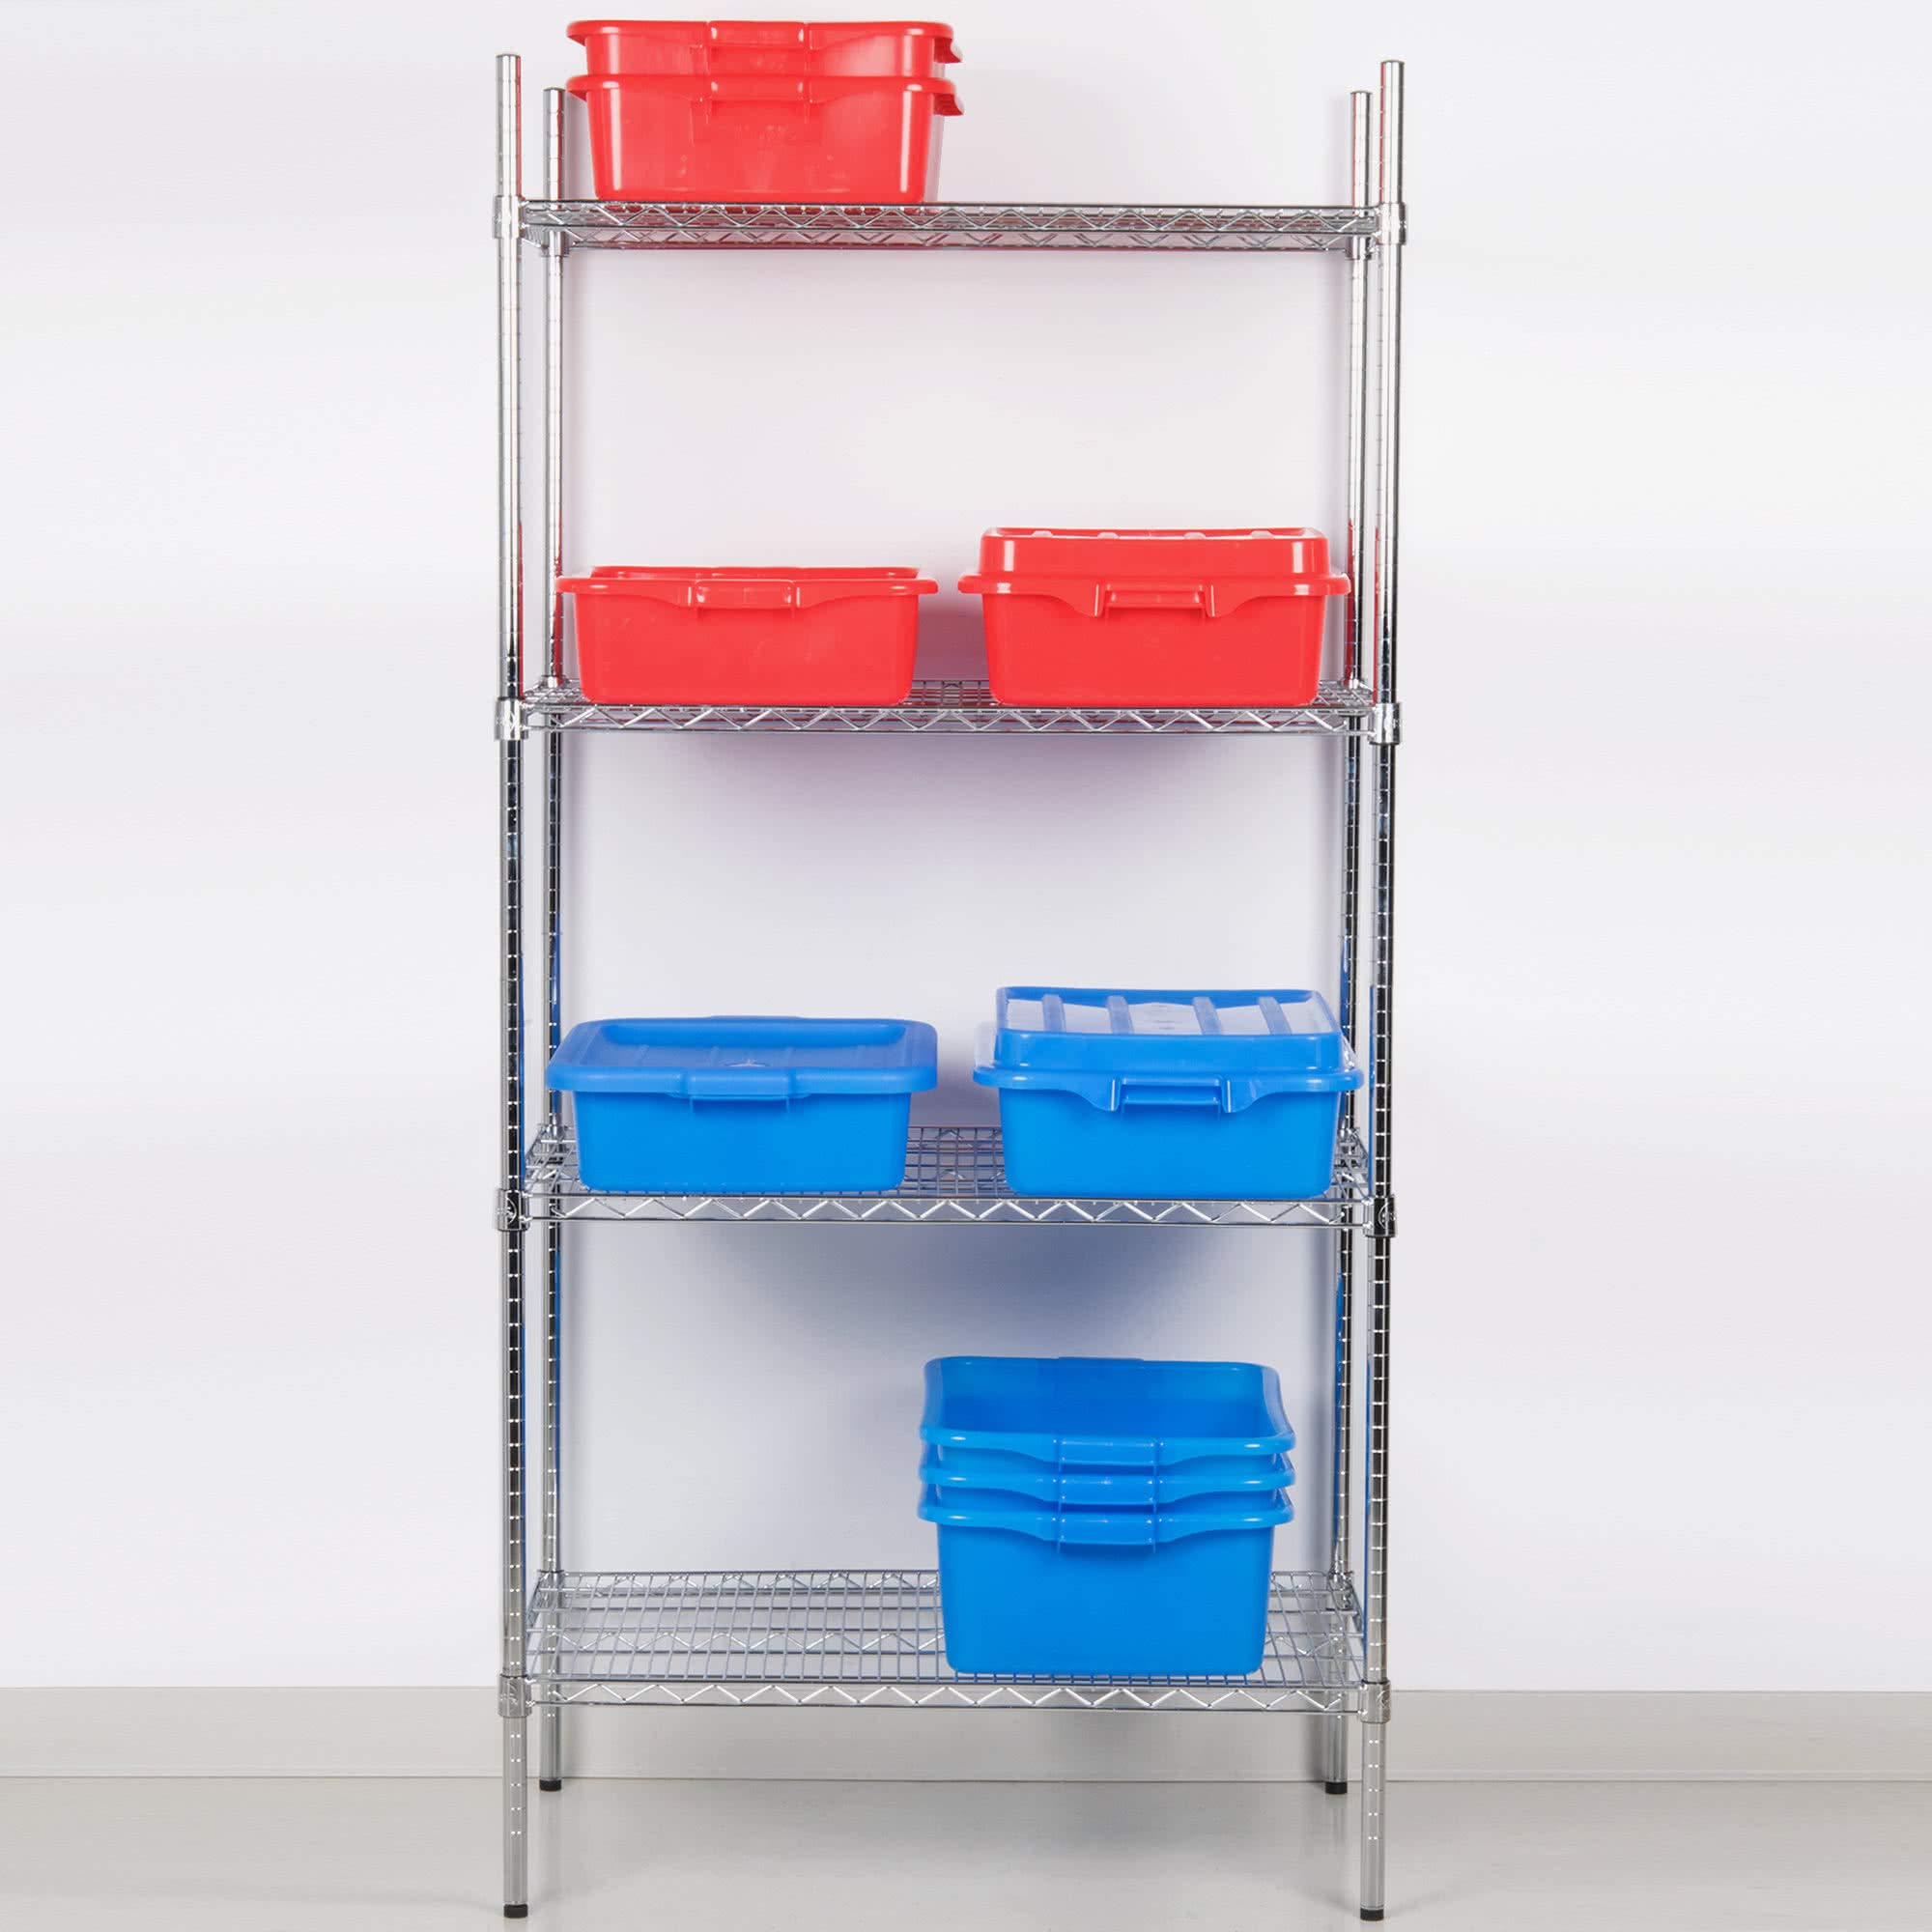 Commercial Chrome Wire Shelving 24 x 42 - NSF (2 Shelves) by L and J (Image #1)